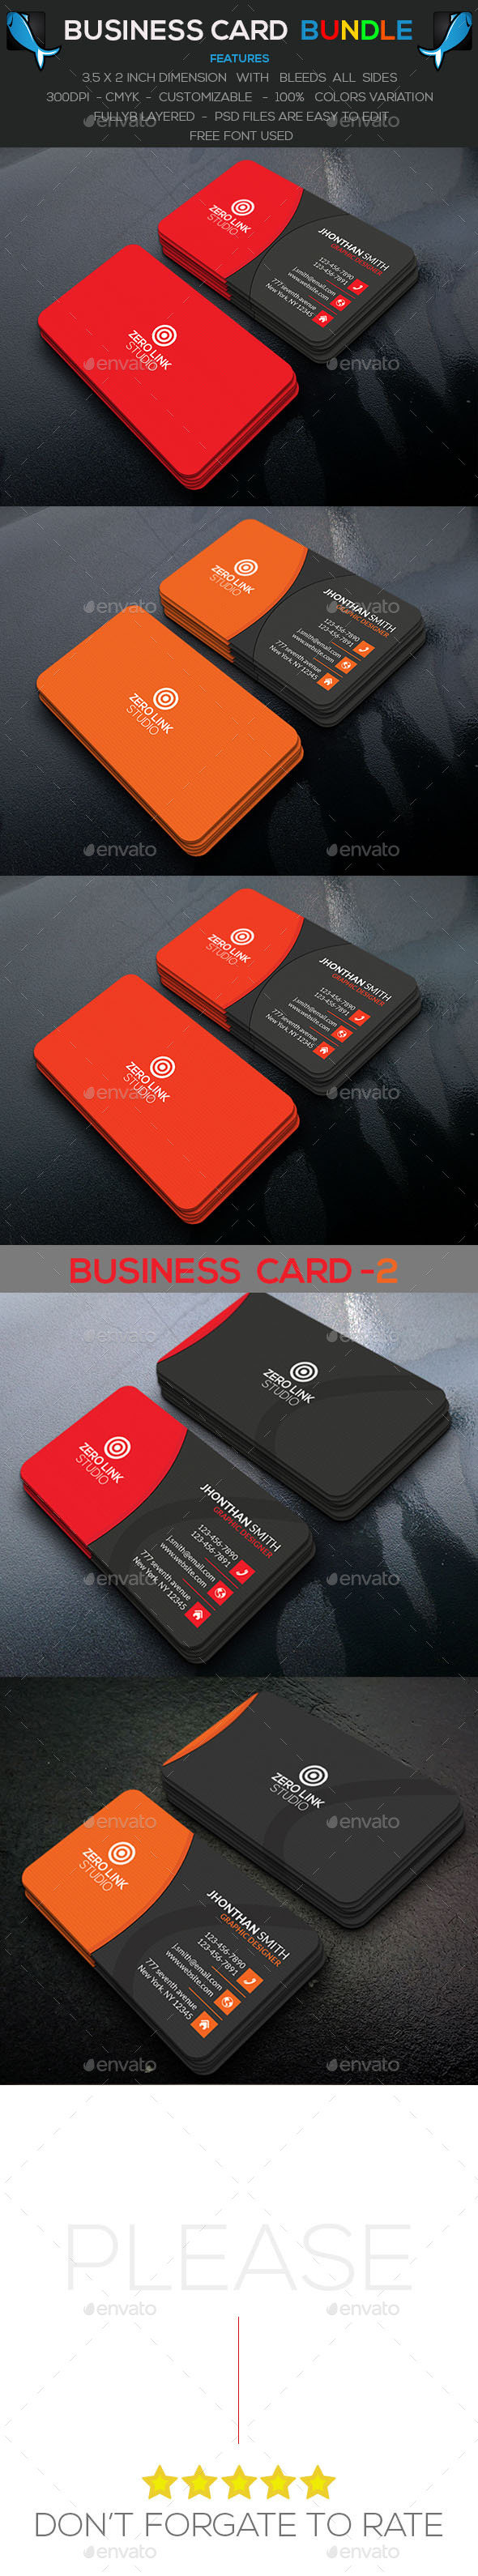 Corporate Business Card Bundle Awesome color